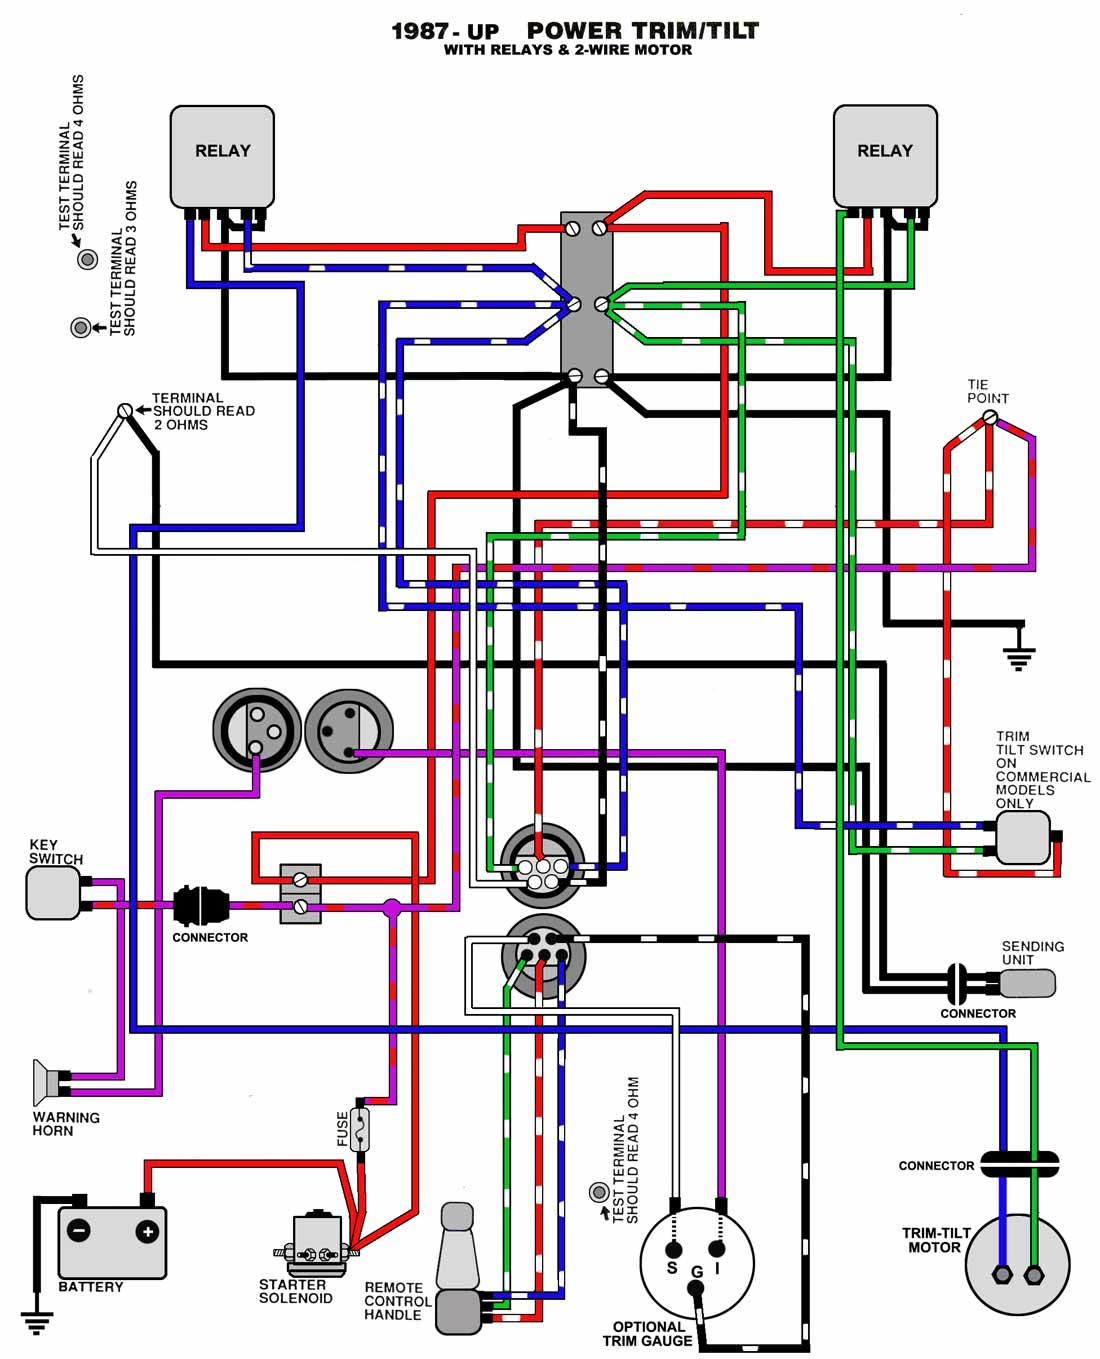 TnT_87_UP mastertech marine evinrude johnson outboard wiring diagrams  at alyssarenee.co